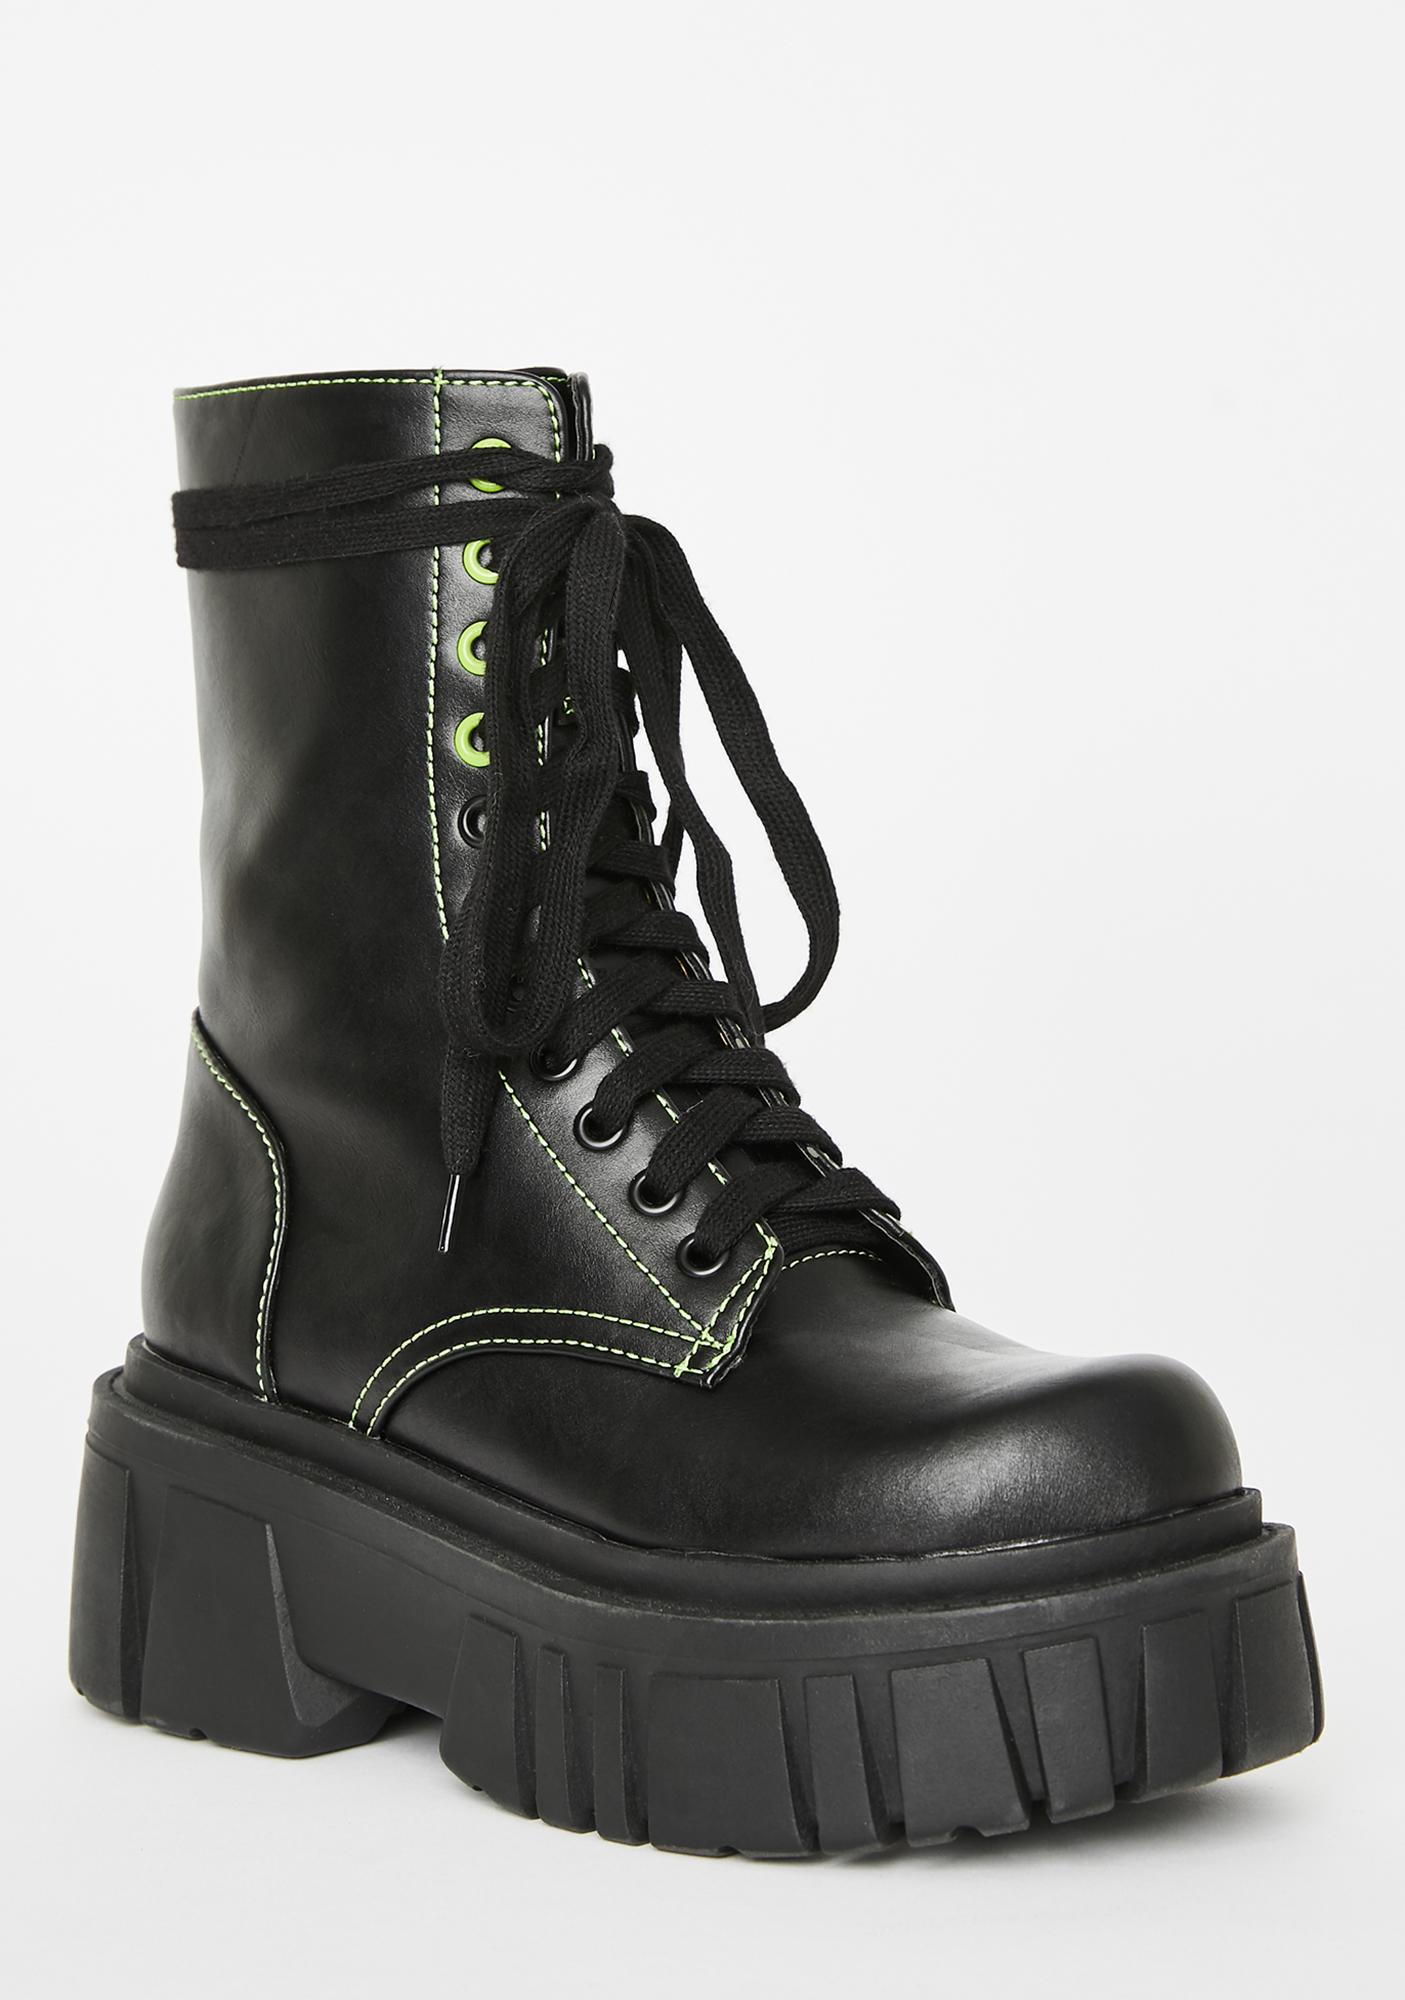 HOROSCOPEZ Brutal Youth Lace Up Boots